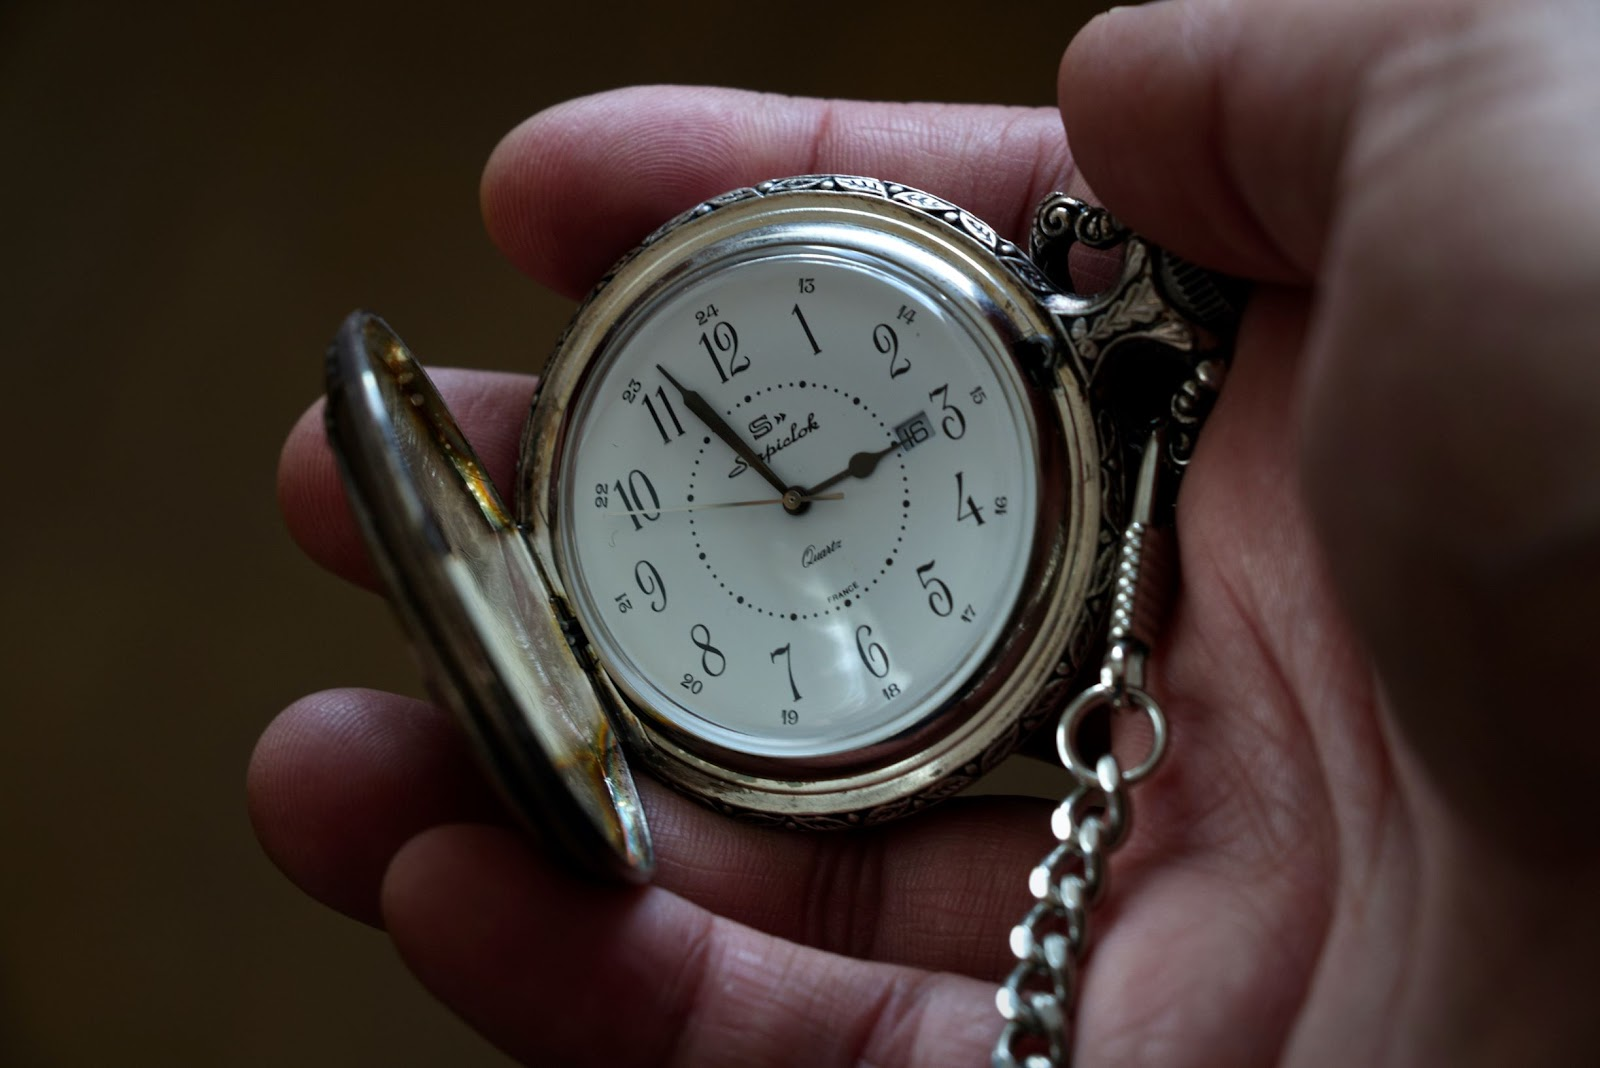 Hand holding old-fashioned wristwatch